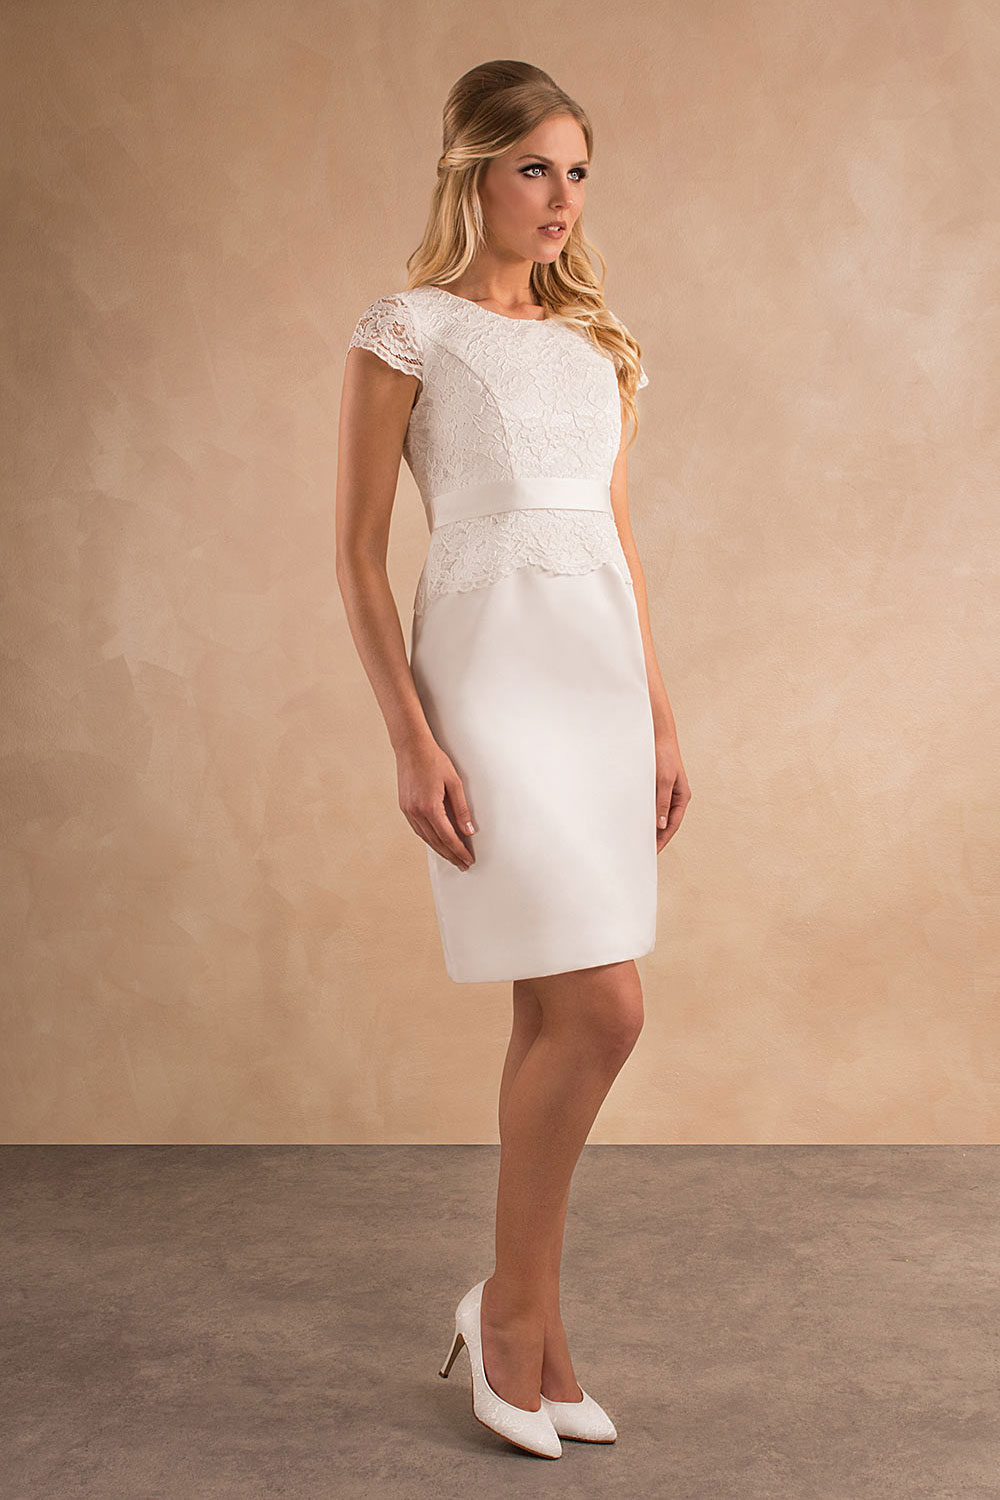 Standesamtkleid A7028 MissGermany-Collection